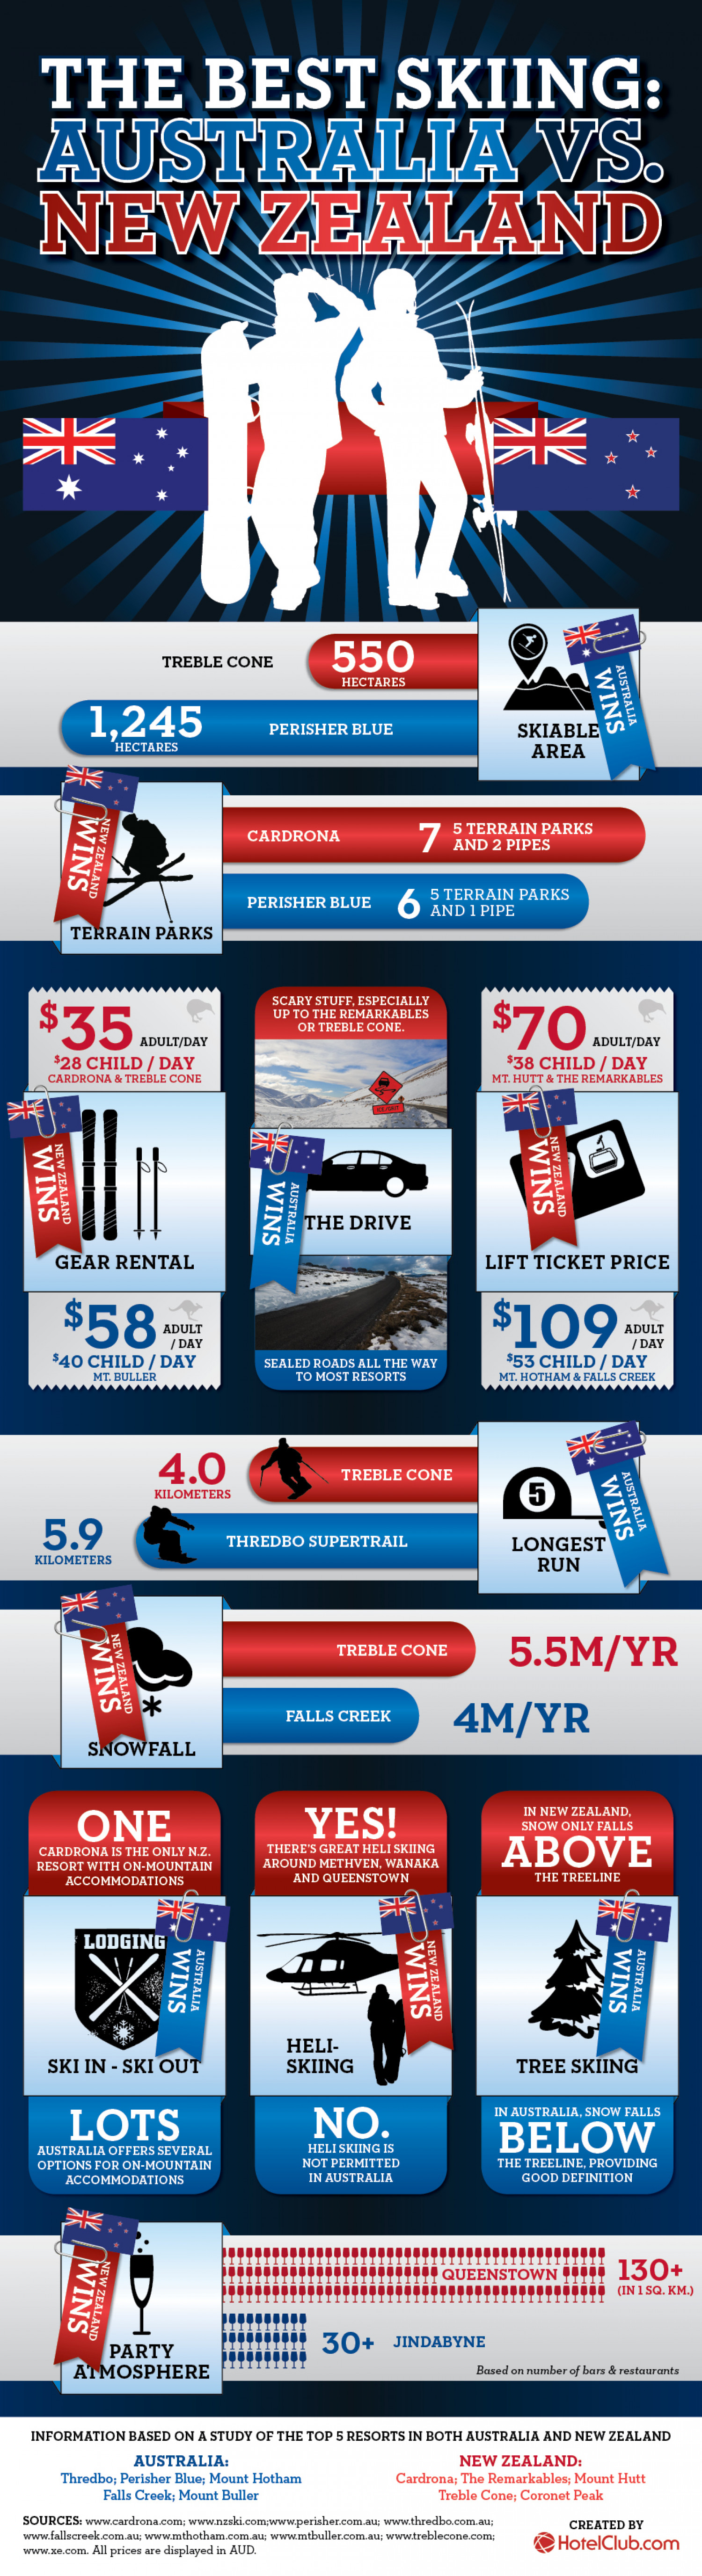 Skiing in Australia Vs. NZ - Which is better? Infographic